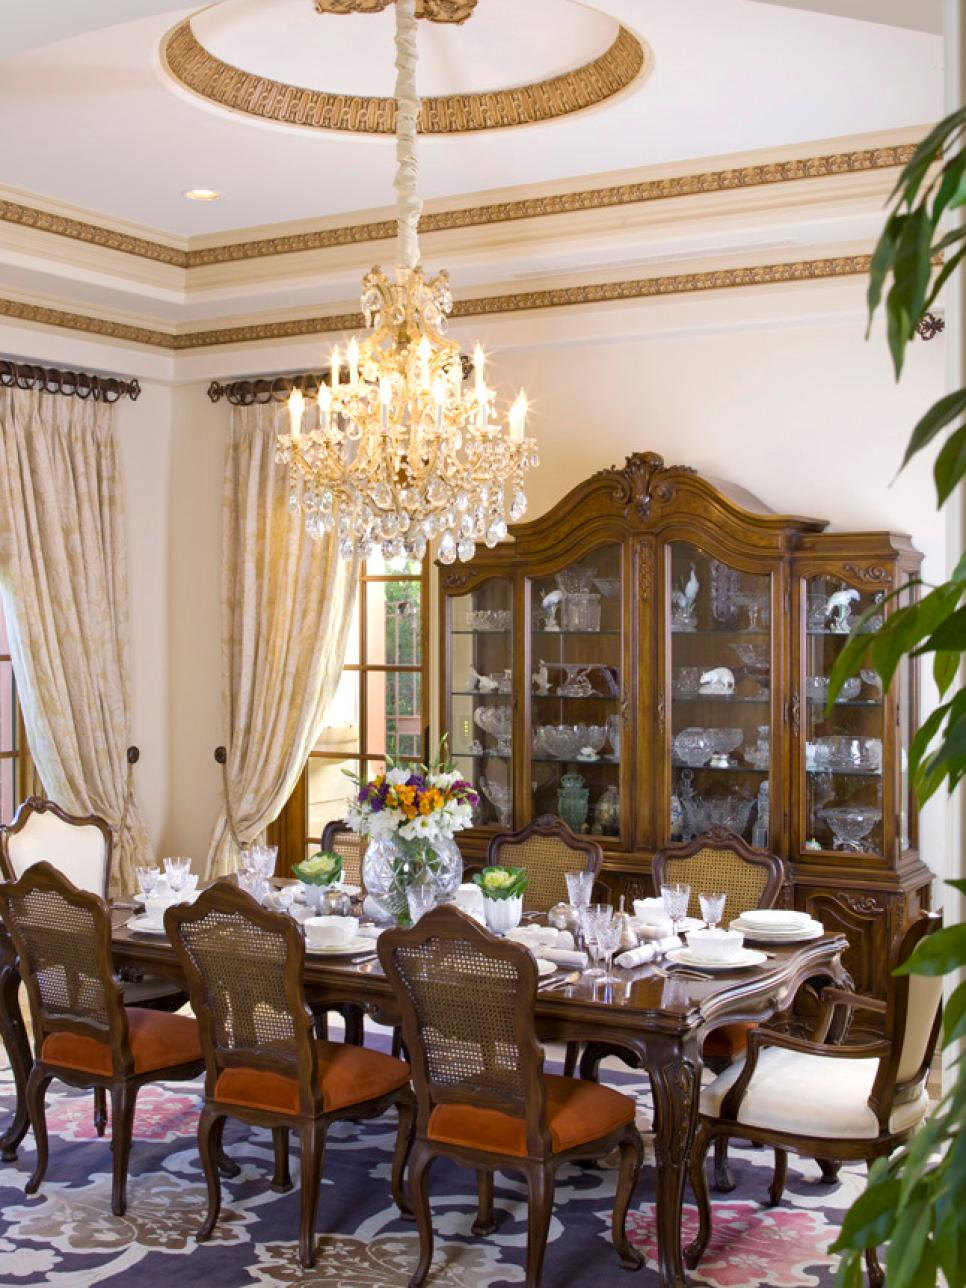 8 elegant victorian style dining room designs hgtv - Stunning image of breakfast room design and decoration ...